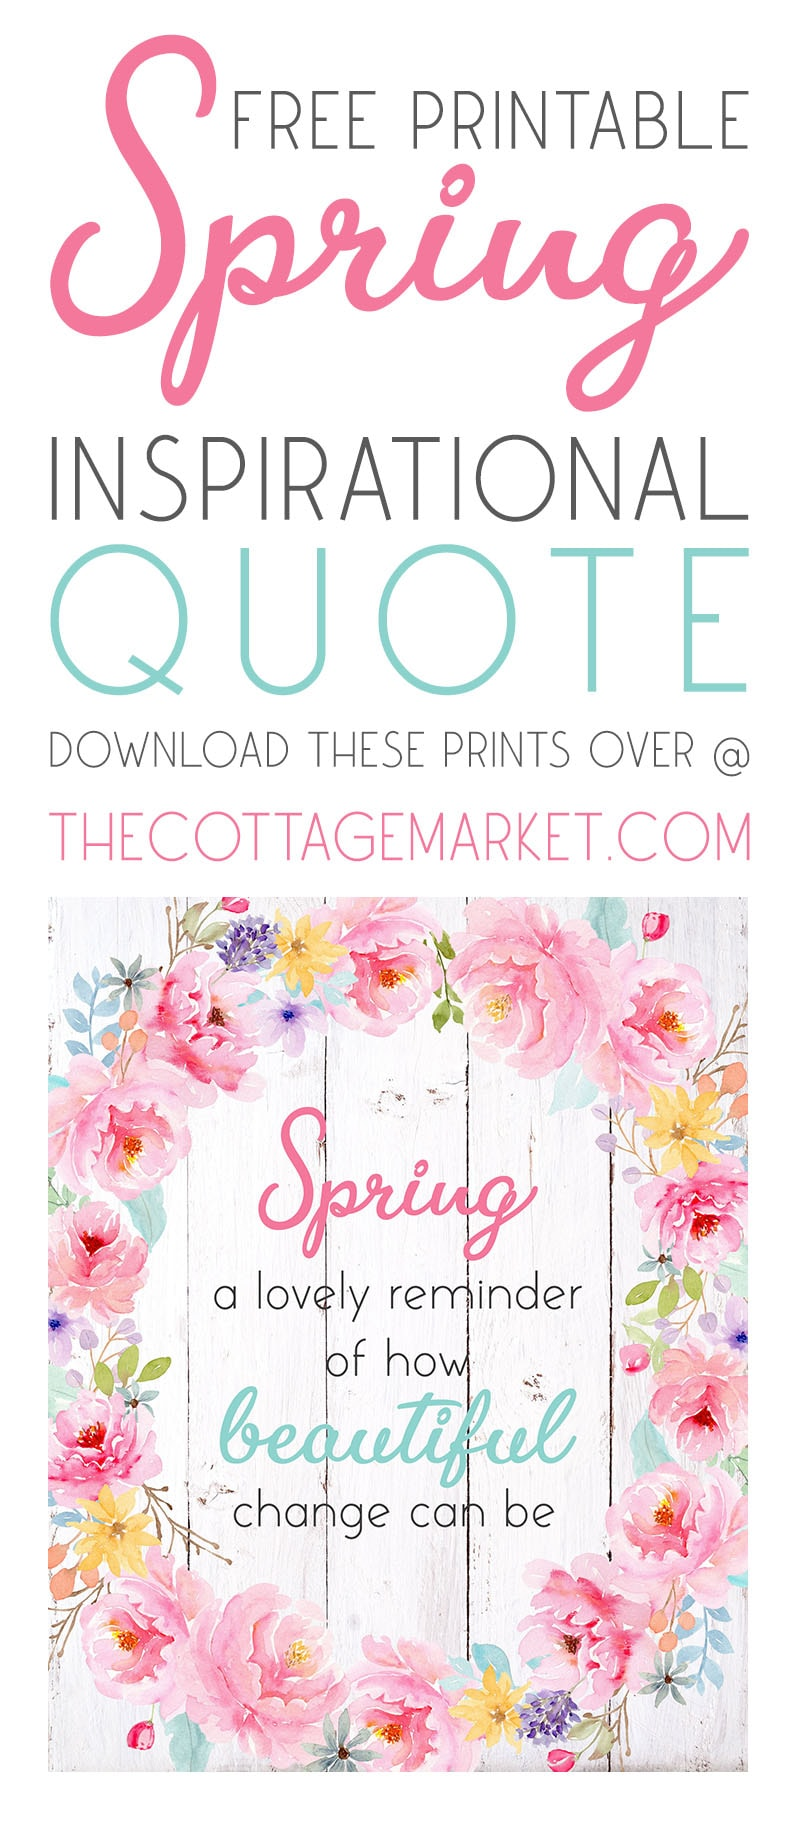 This Free Printable Spring Inspiration Quote is going to look totally fabulous and fresh on you wall or as part of your wall gallery and more.  It's cheery and a great way to celebrate the Season!